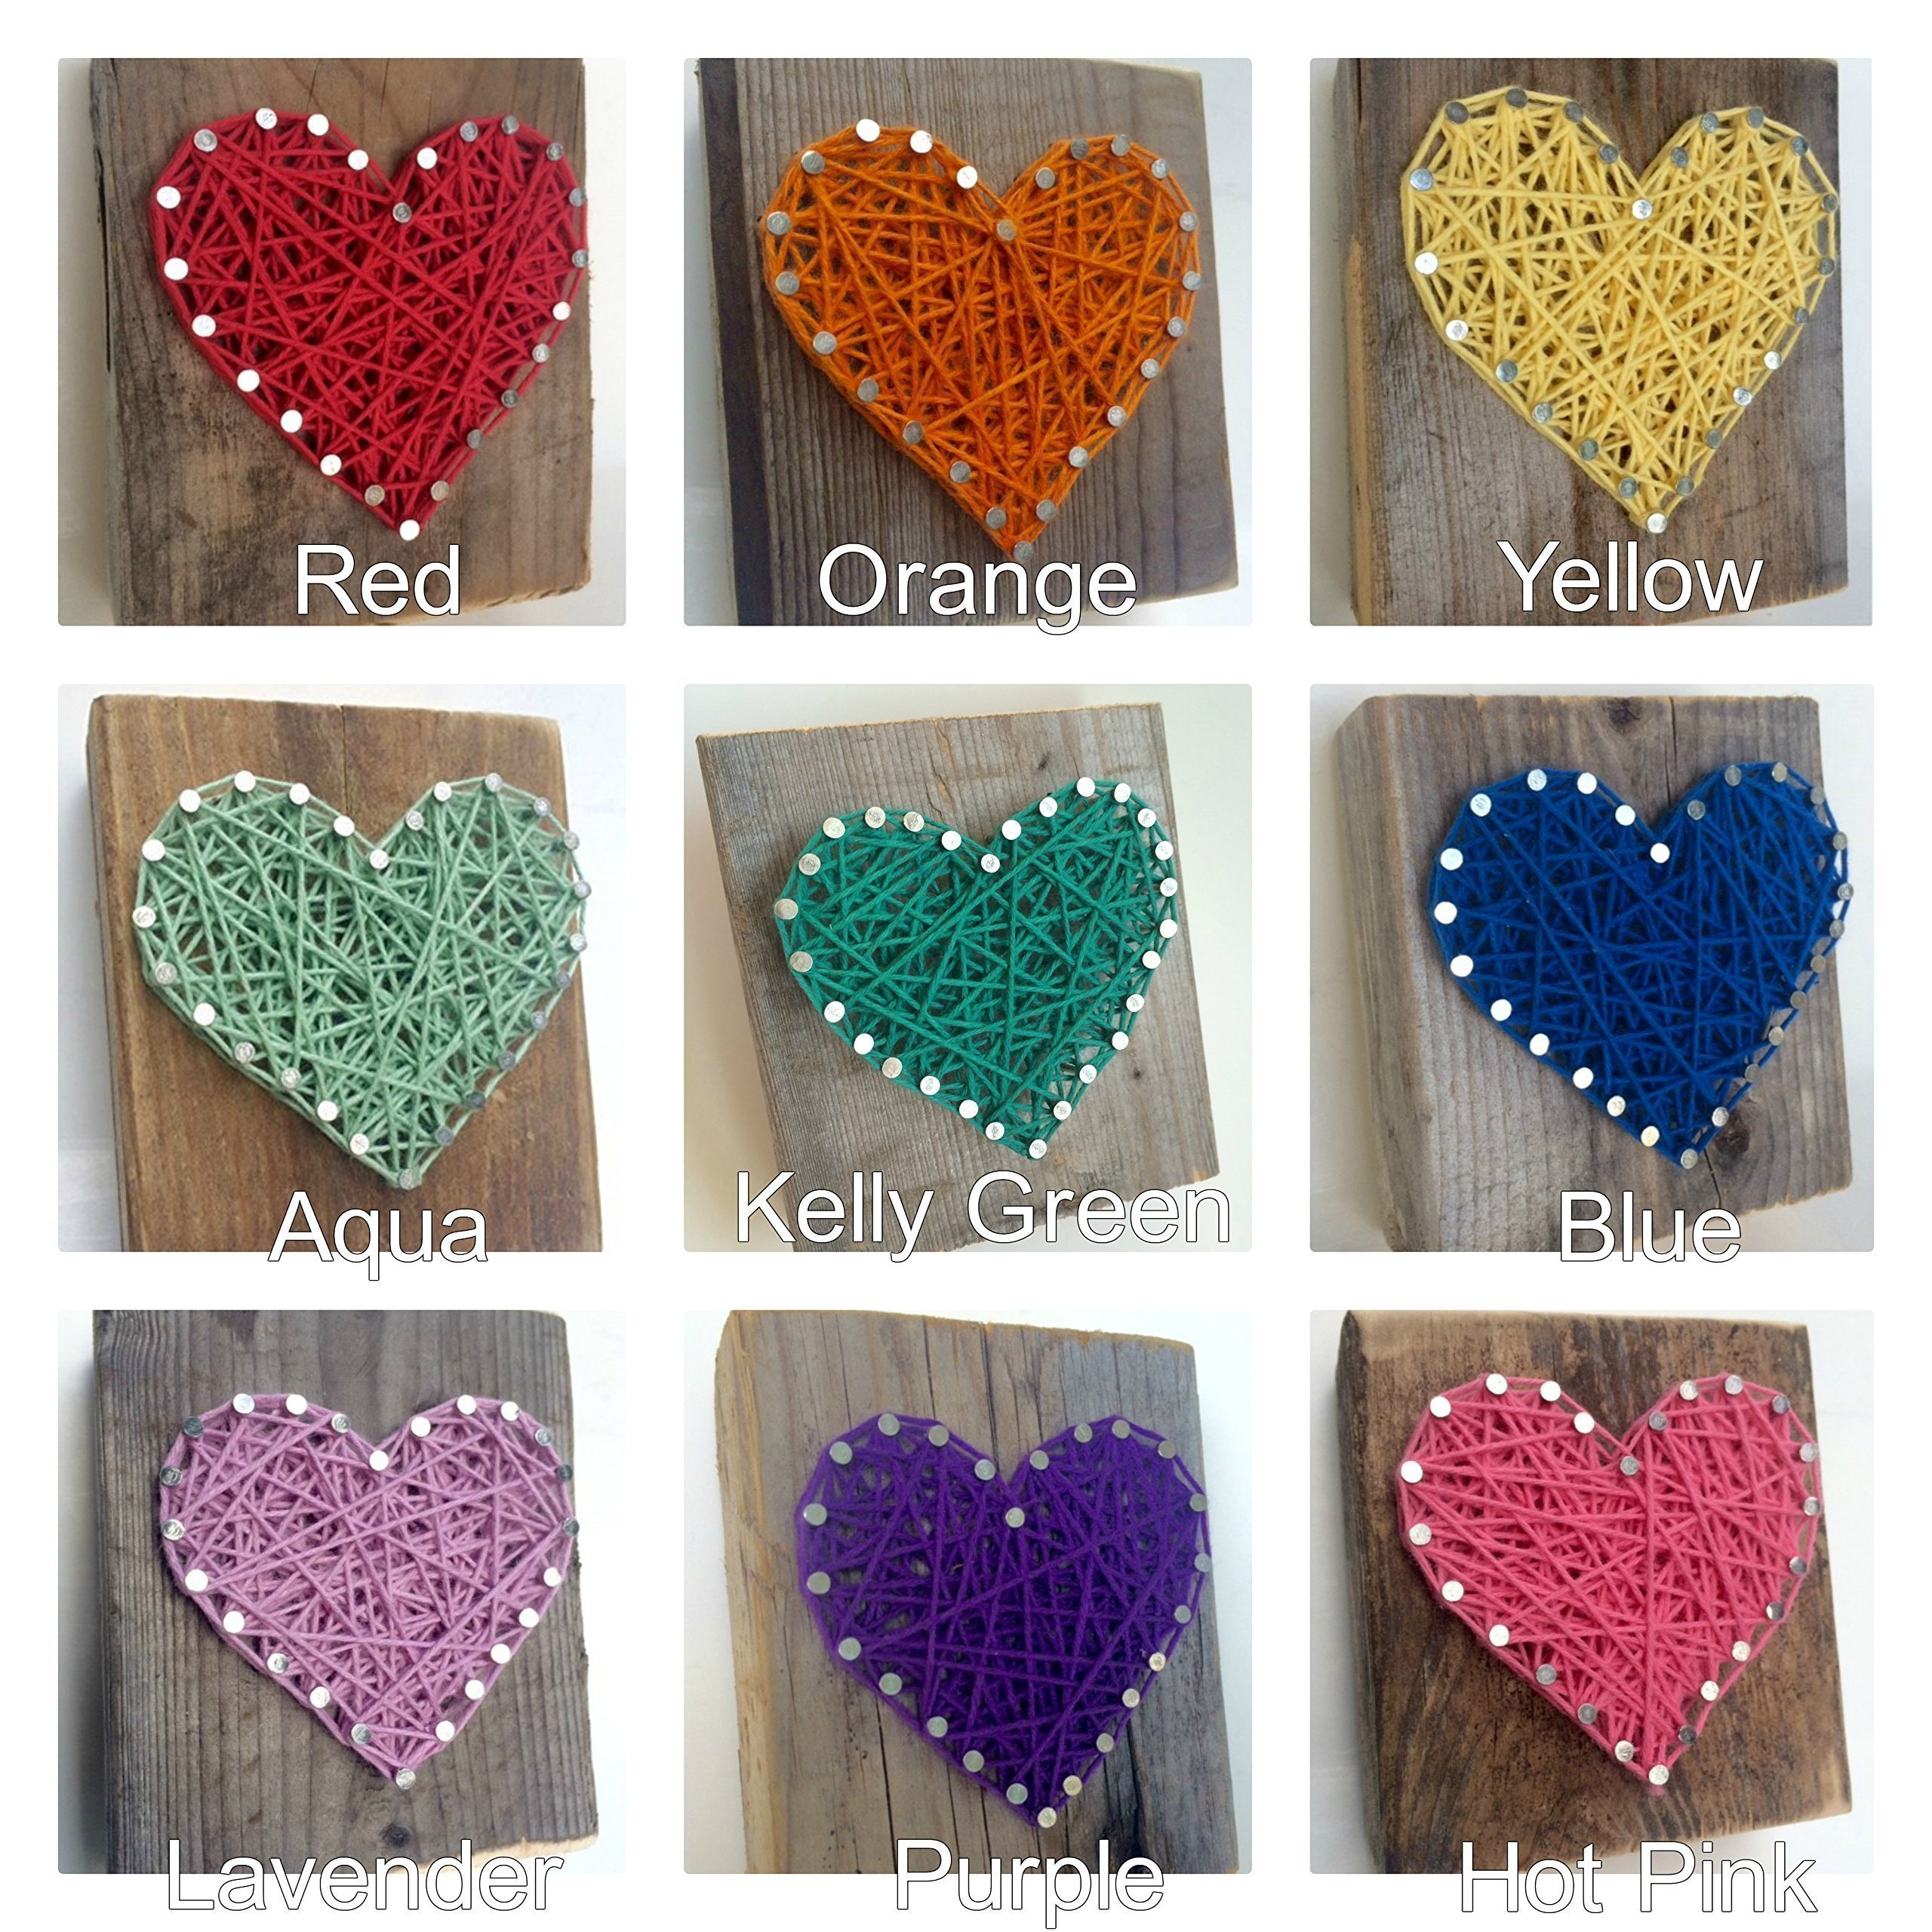 Sweet and small rustic wooden aqua string art heart block. Unique gift Easter baskets, for Father's Day, Weddings, Anniversaries, Birthdays, Christmas, housewarming and just because gifts. by Nail it Art (Image #3)